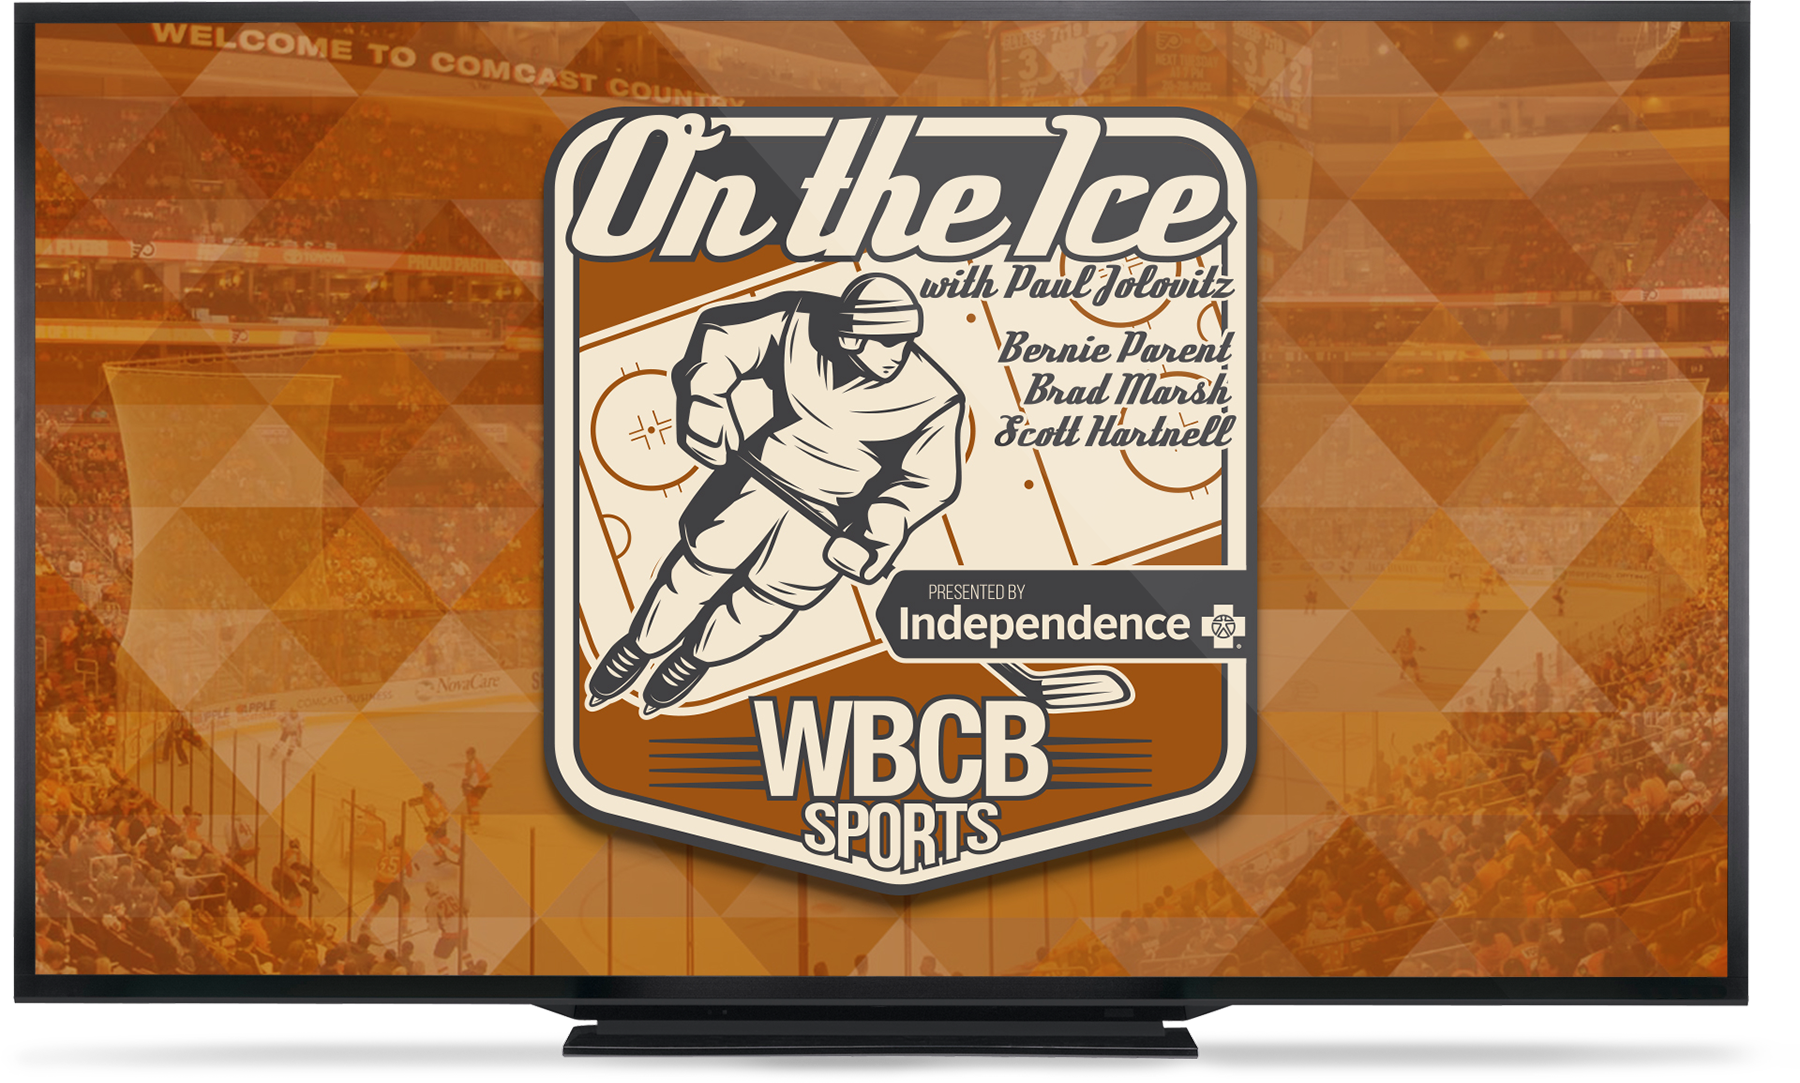 Watch On the Ice with Paul Jolovitz live on WBCB Sports